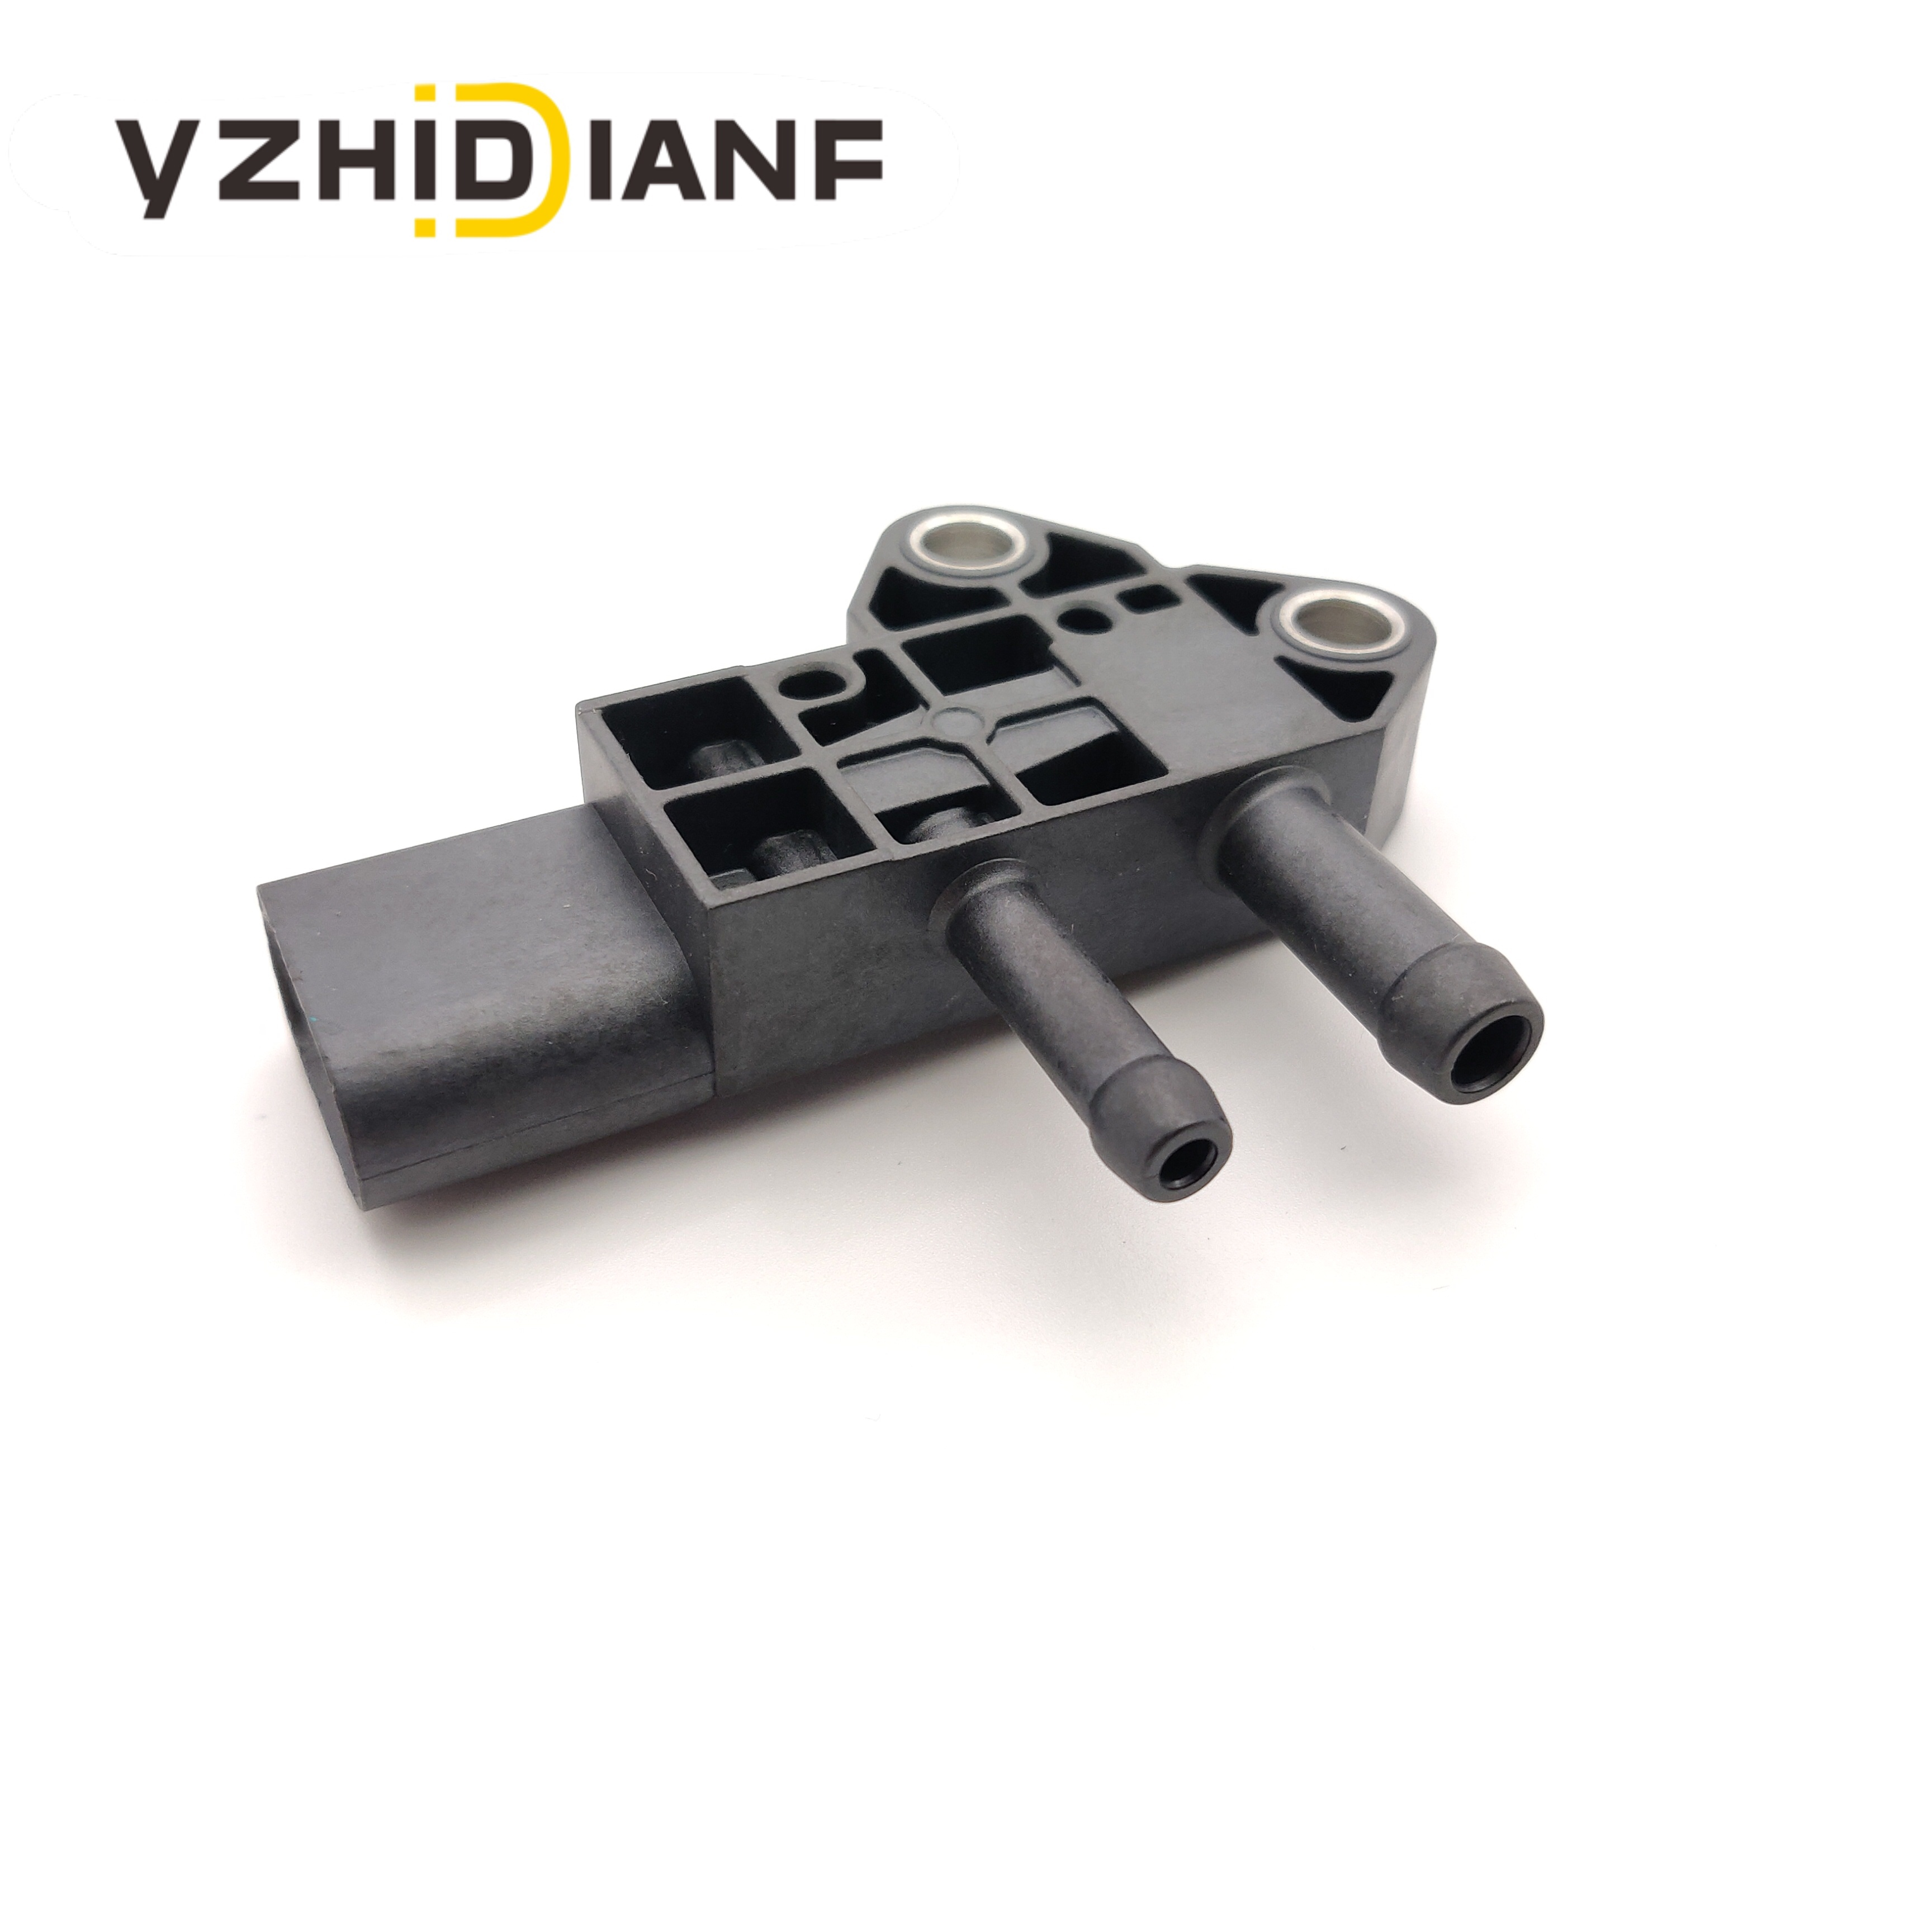 High quality Air intake pressure sensor H01182B2 for car auto accessories Fast delivery Good service